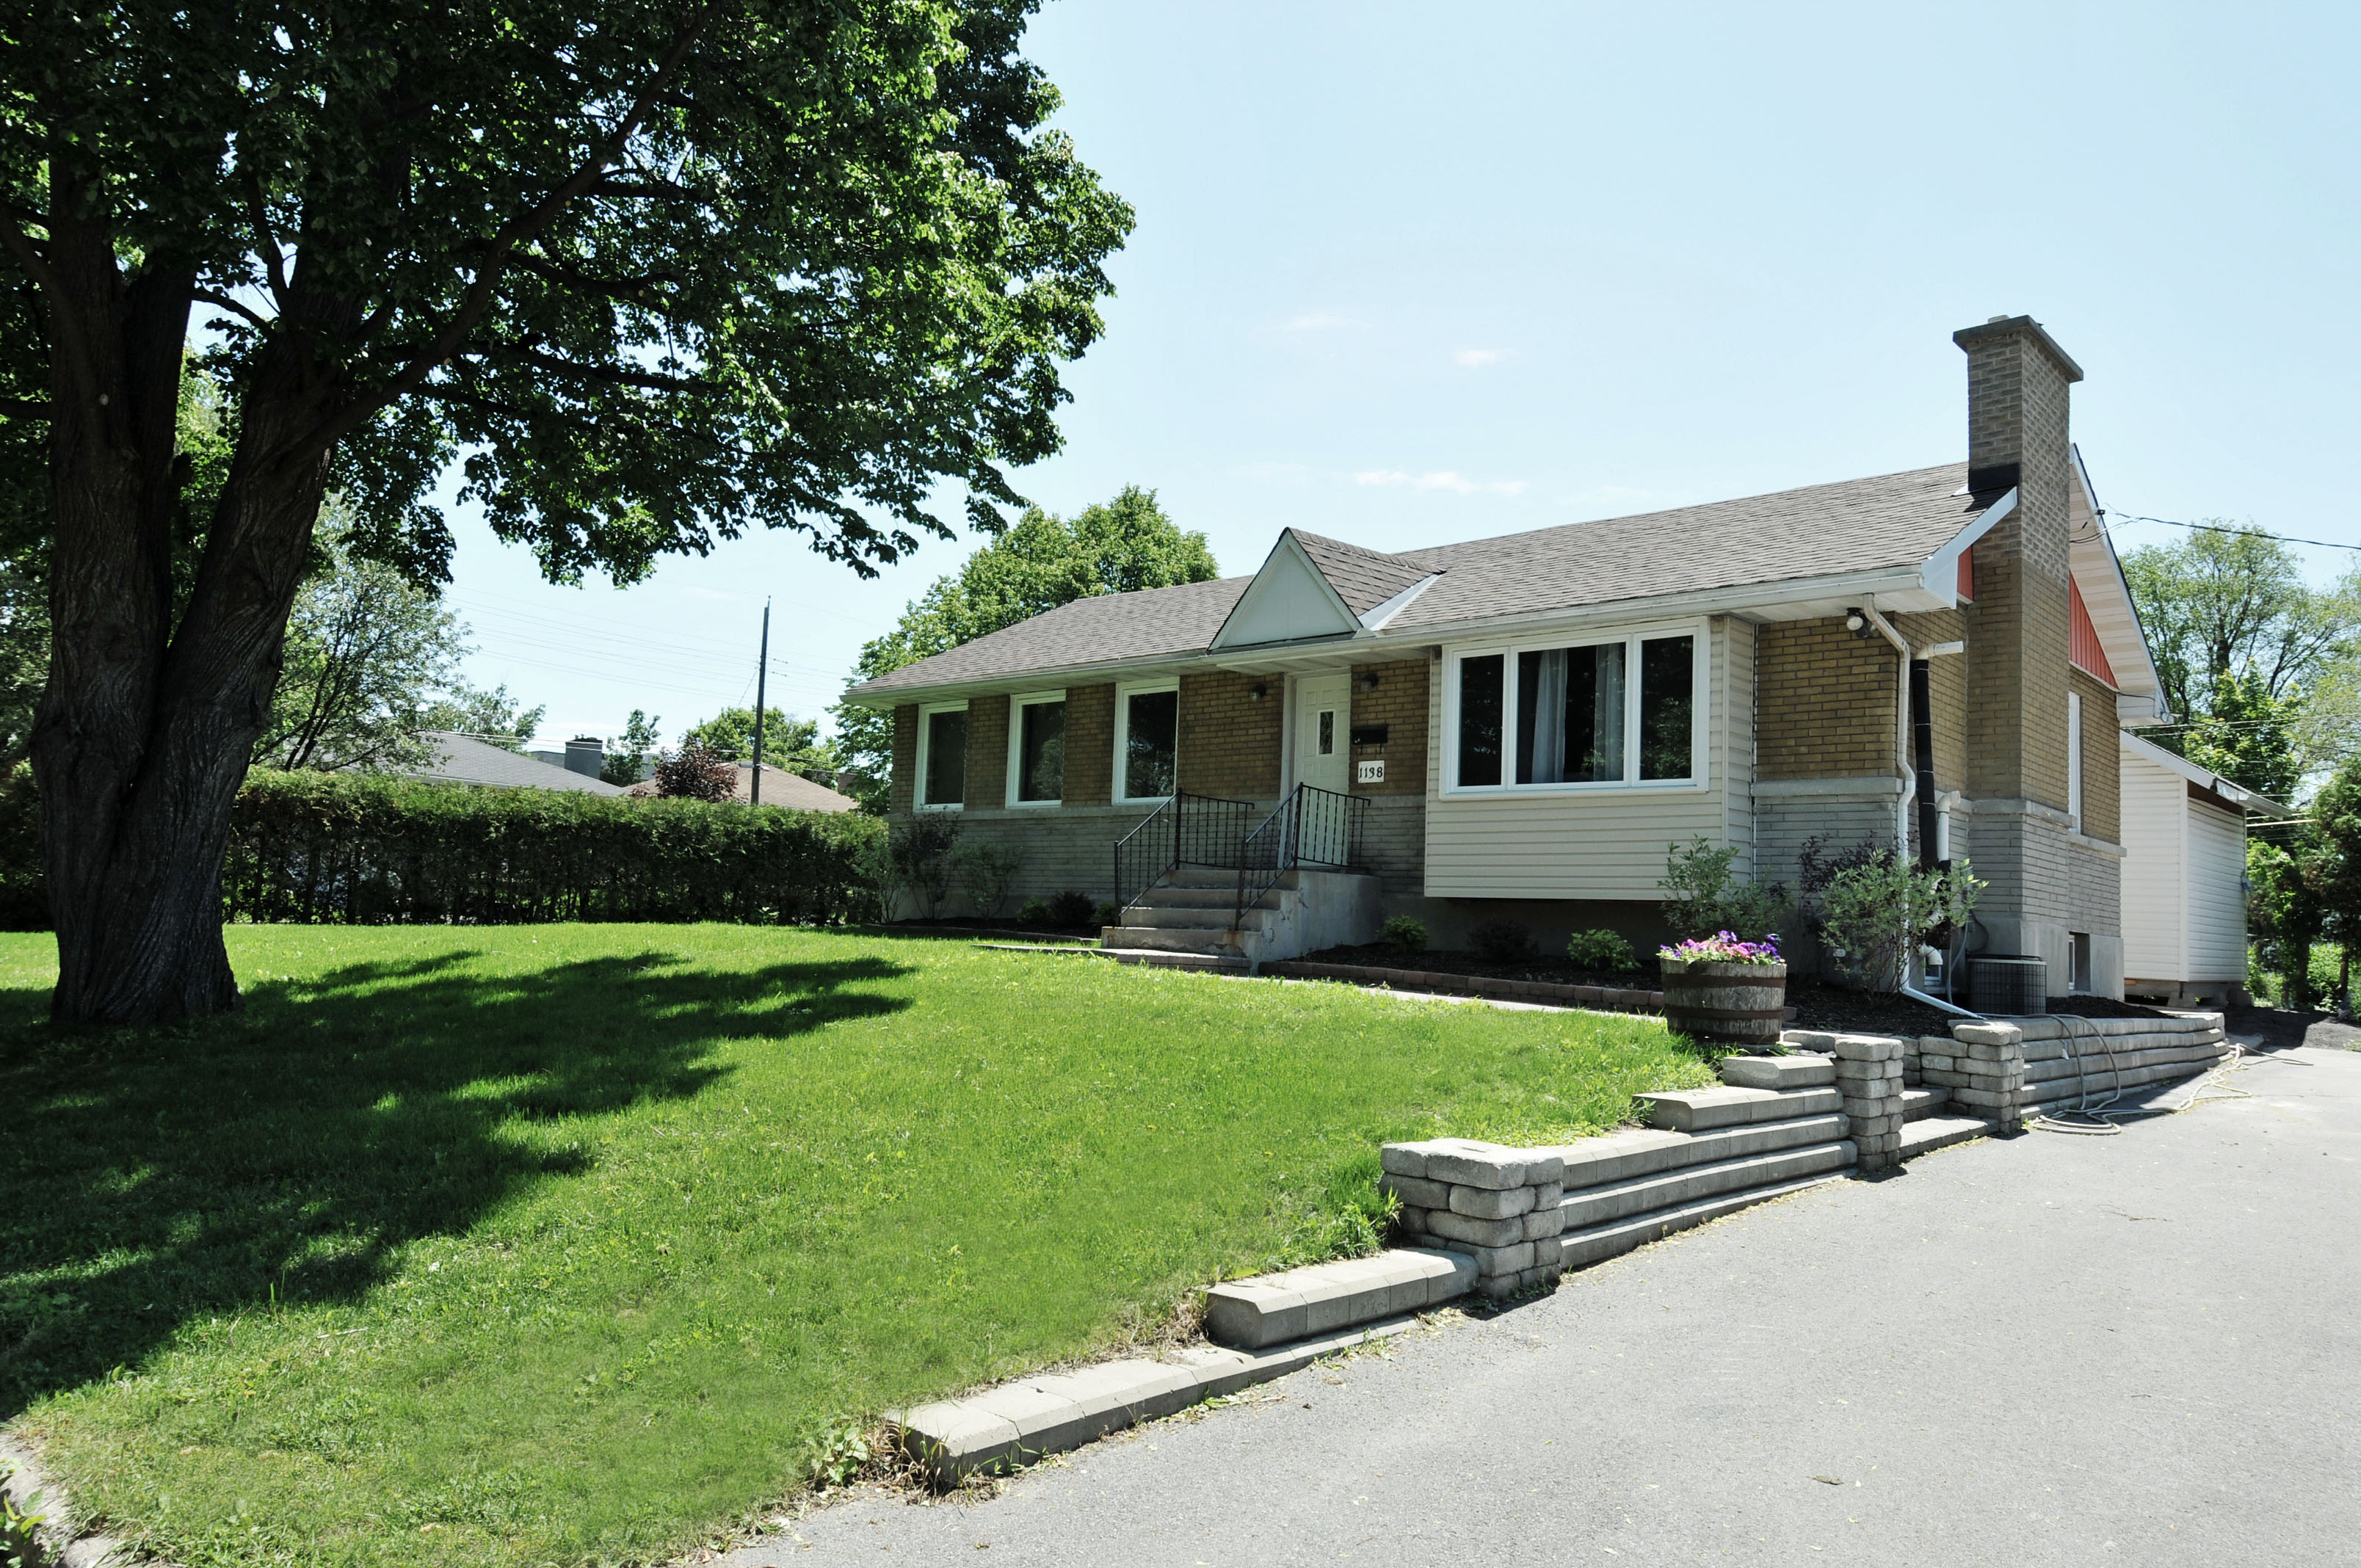 1138 Guertin Avenue brick bungalow